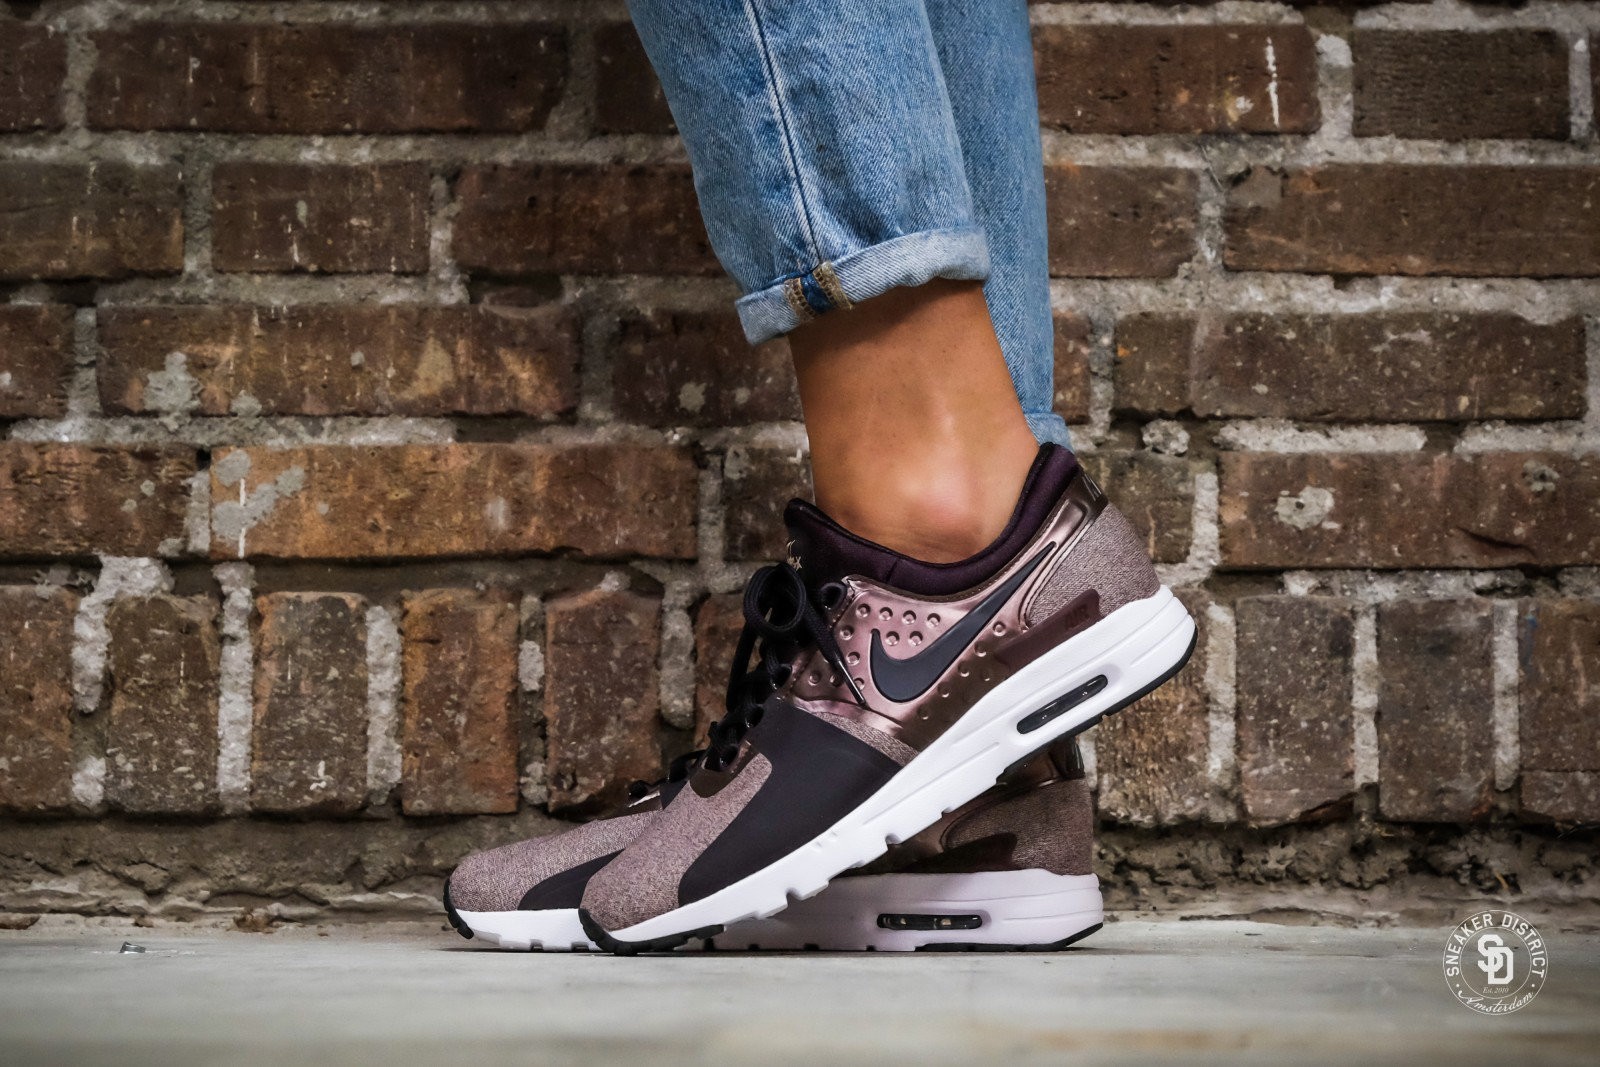 korting Nike Air Max Zero Premium Women's Shoes Port